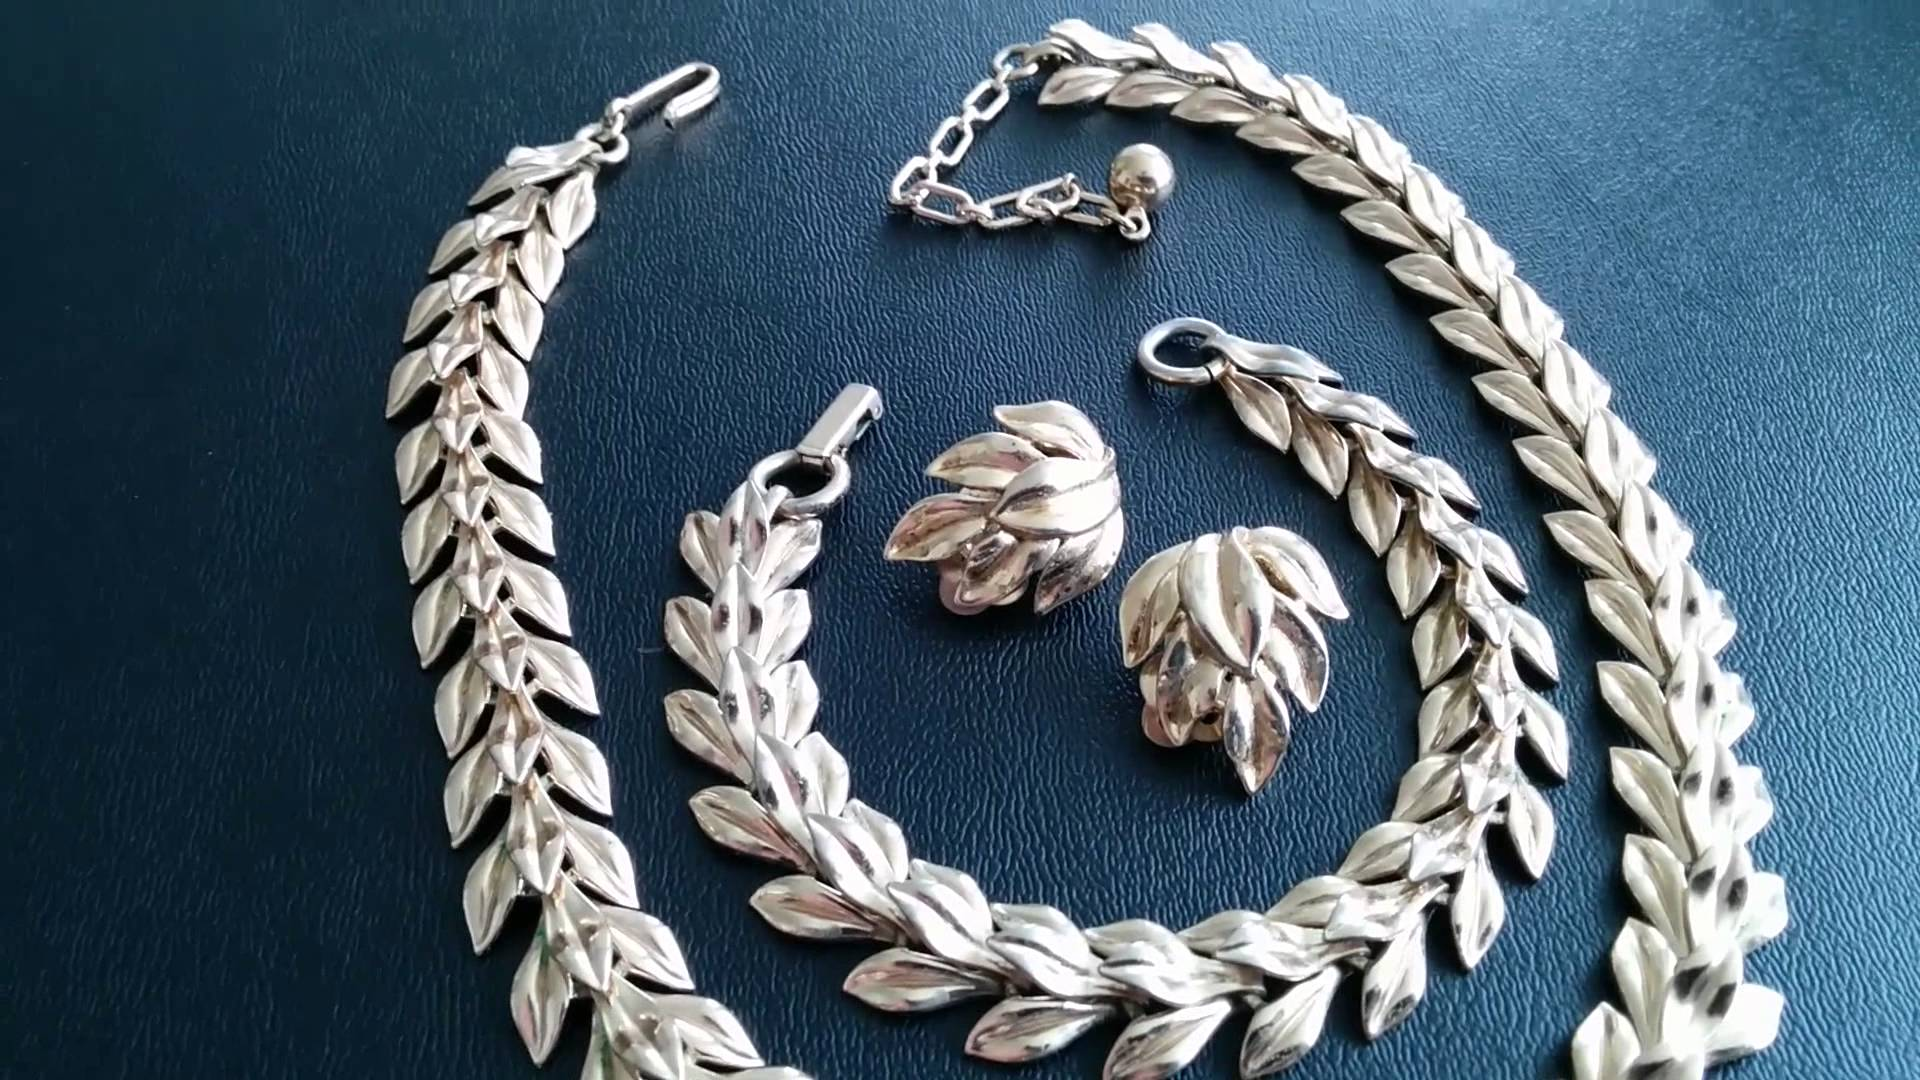 This  Tifari  set was created with spin casting.